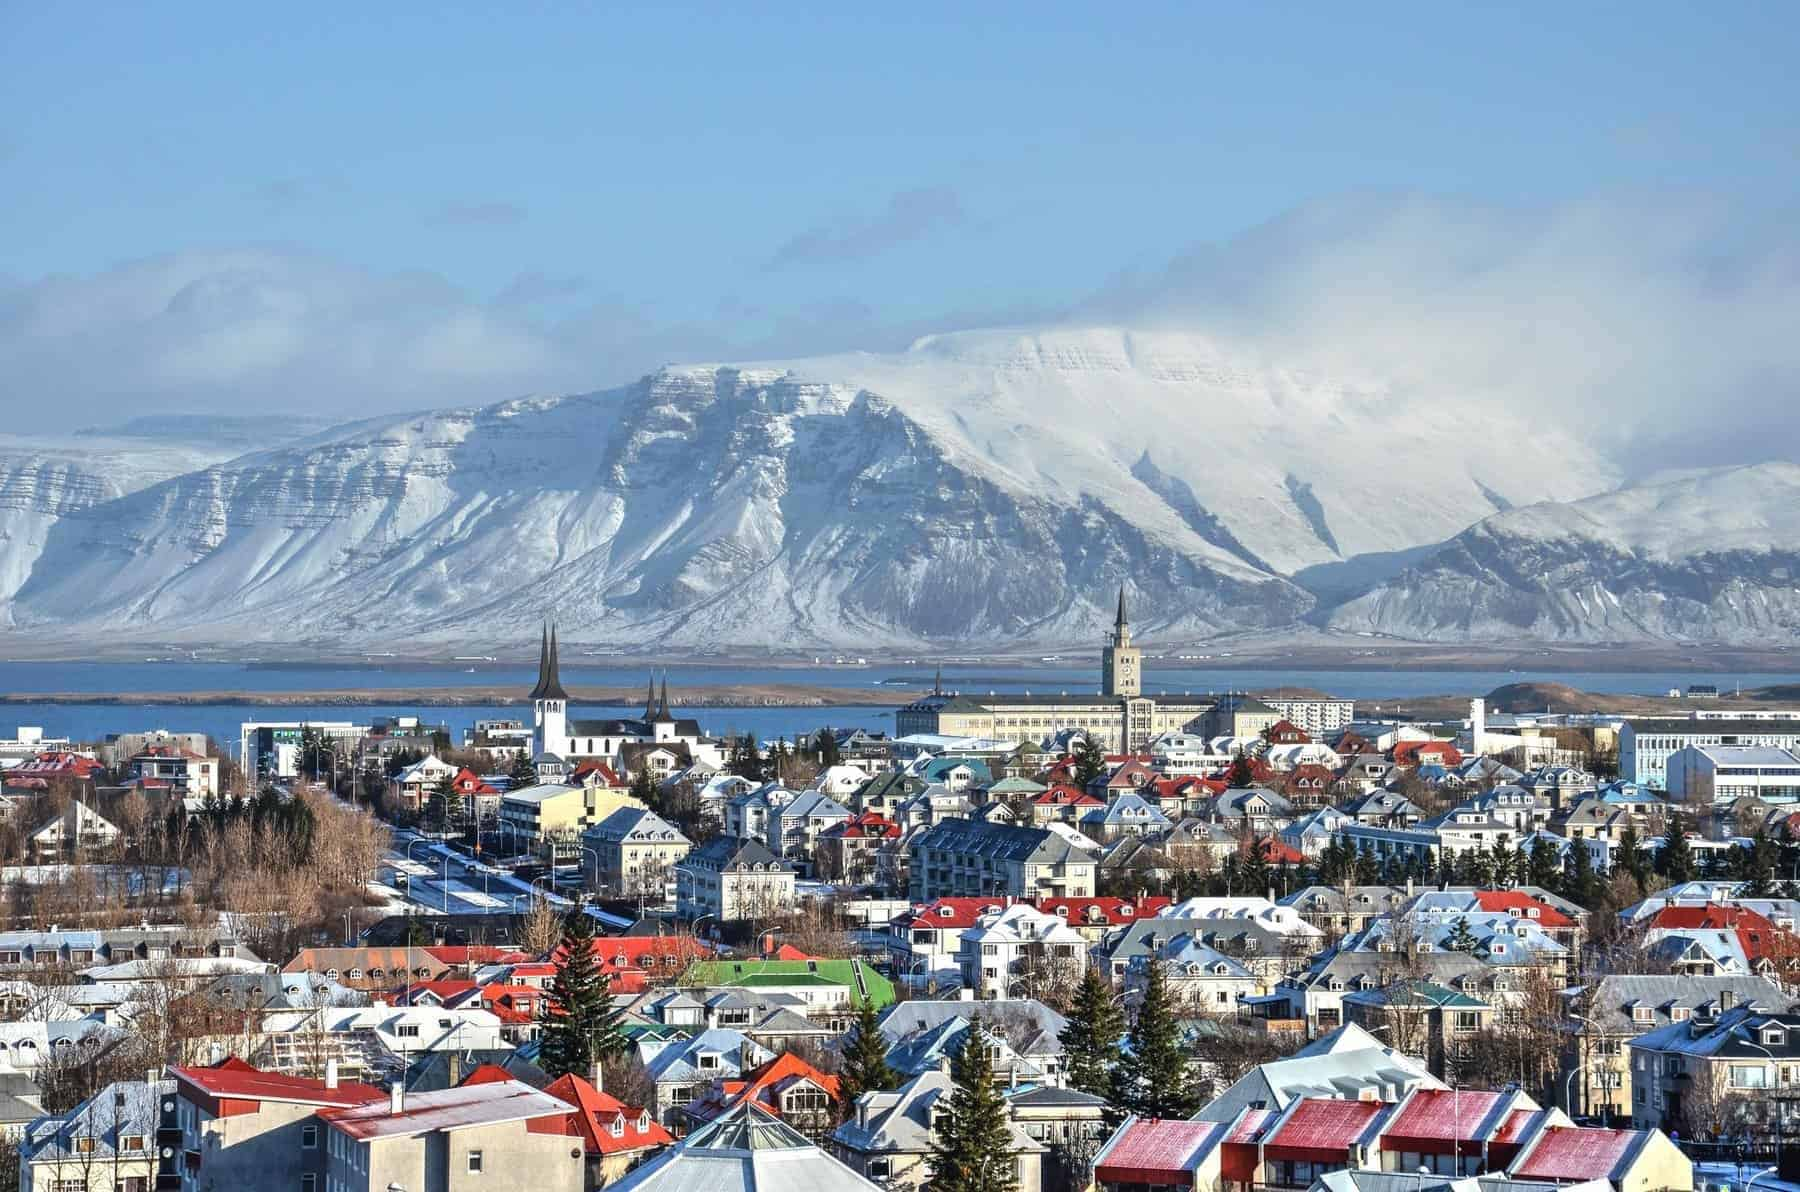 Reykjavik, Iceland, Colorful roofs and the ocean and mountains